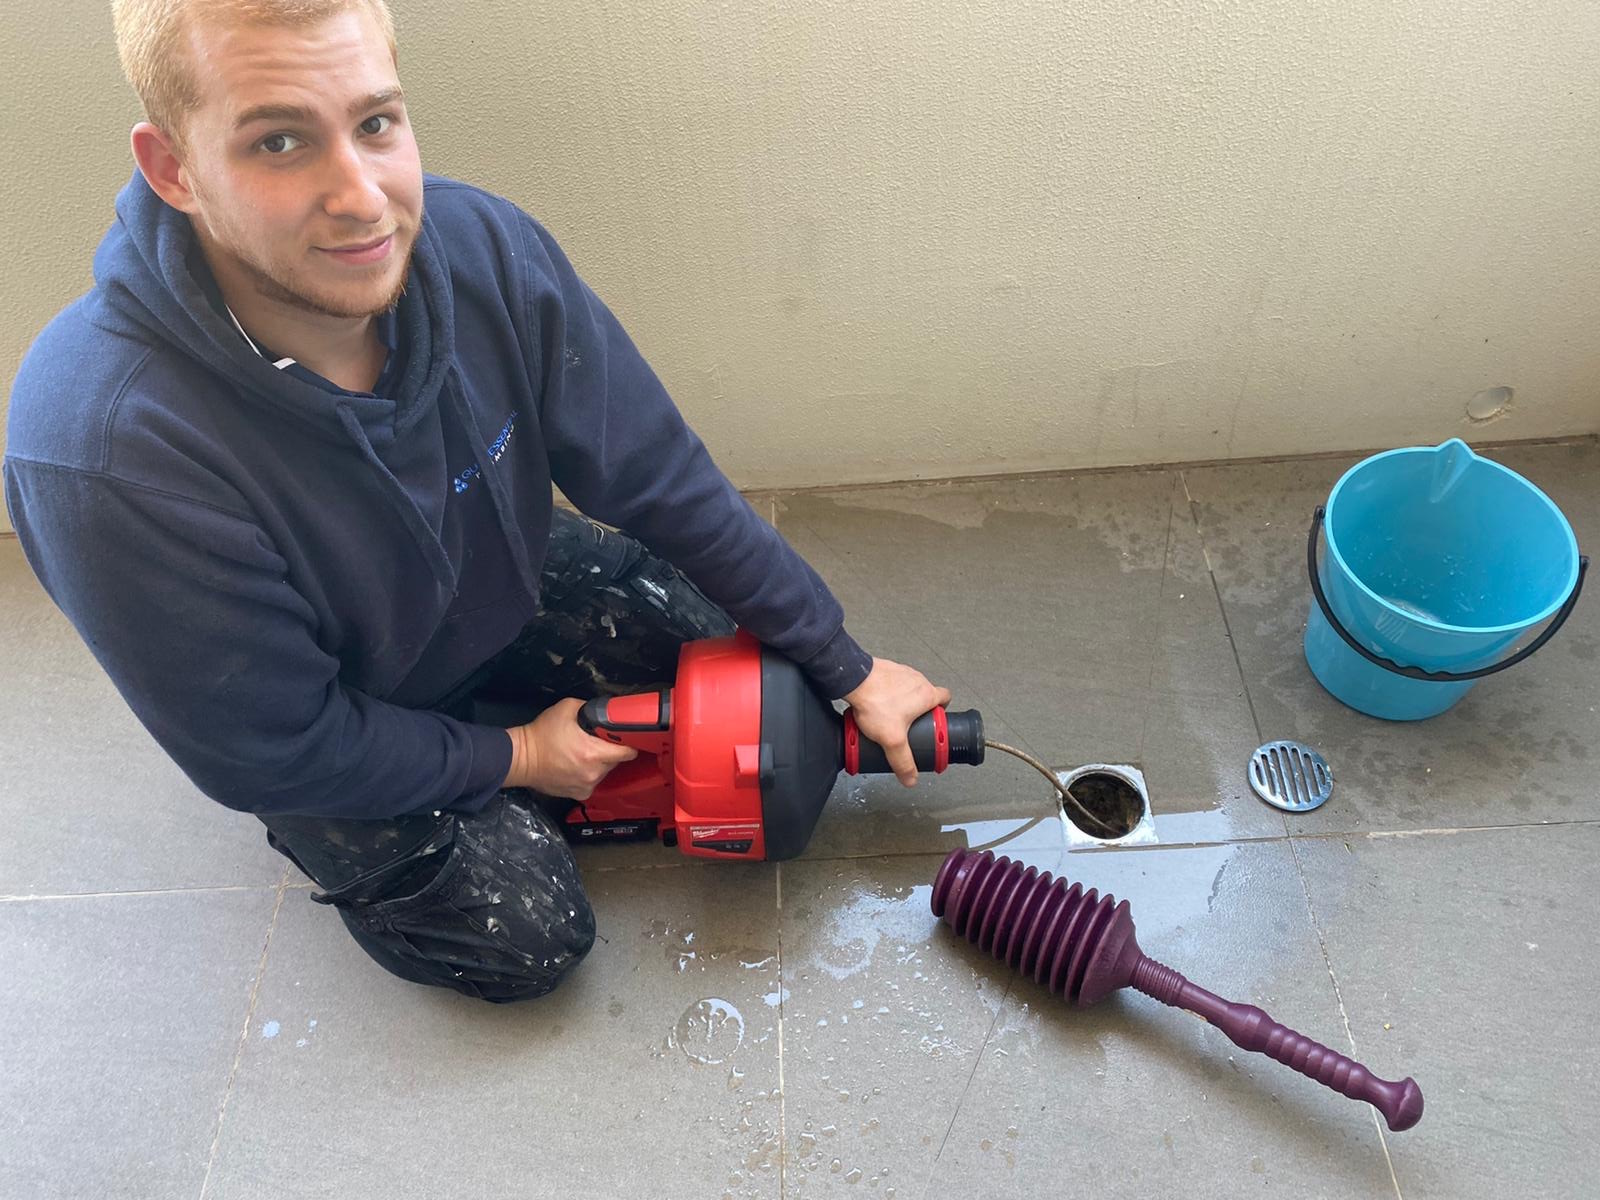 Quintessential Plumbing - The St. George and Marrickvilles Local Plumber